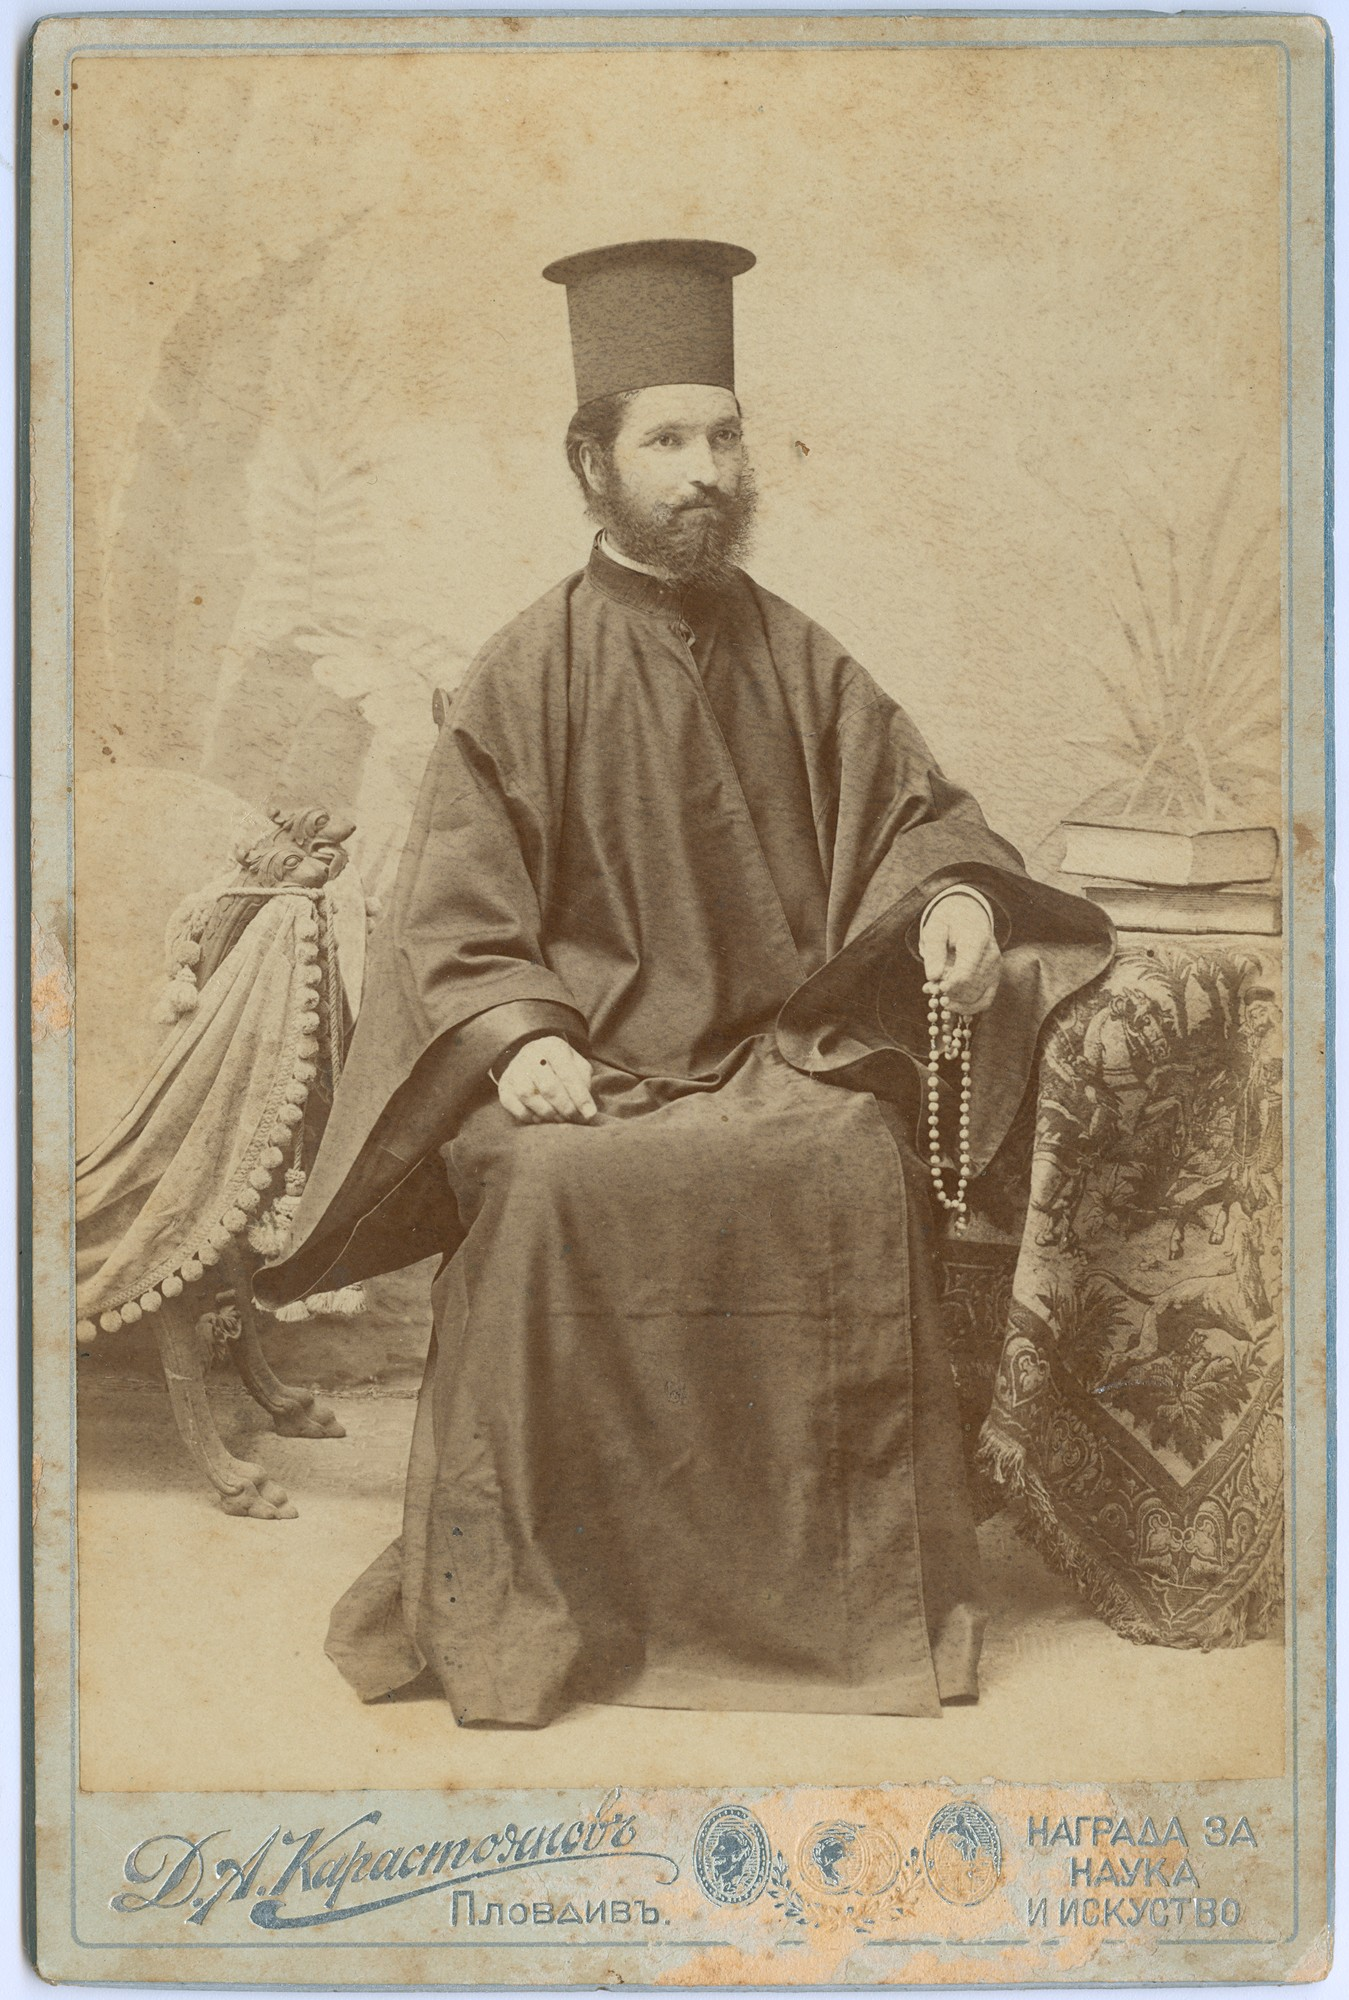 Studio portrait of the priest Dimitar Vakarelov, © State Archives - Plovdiv